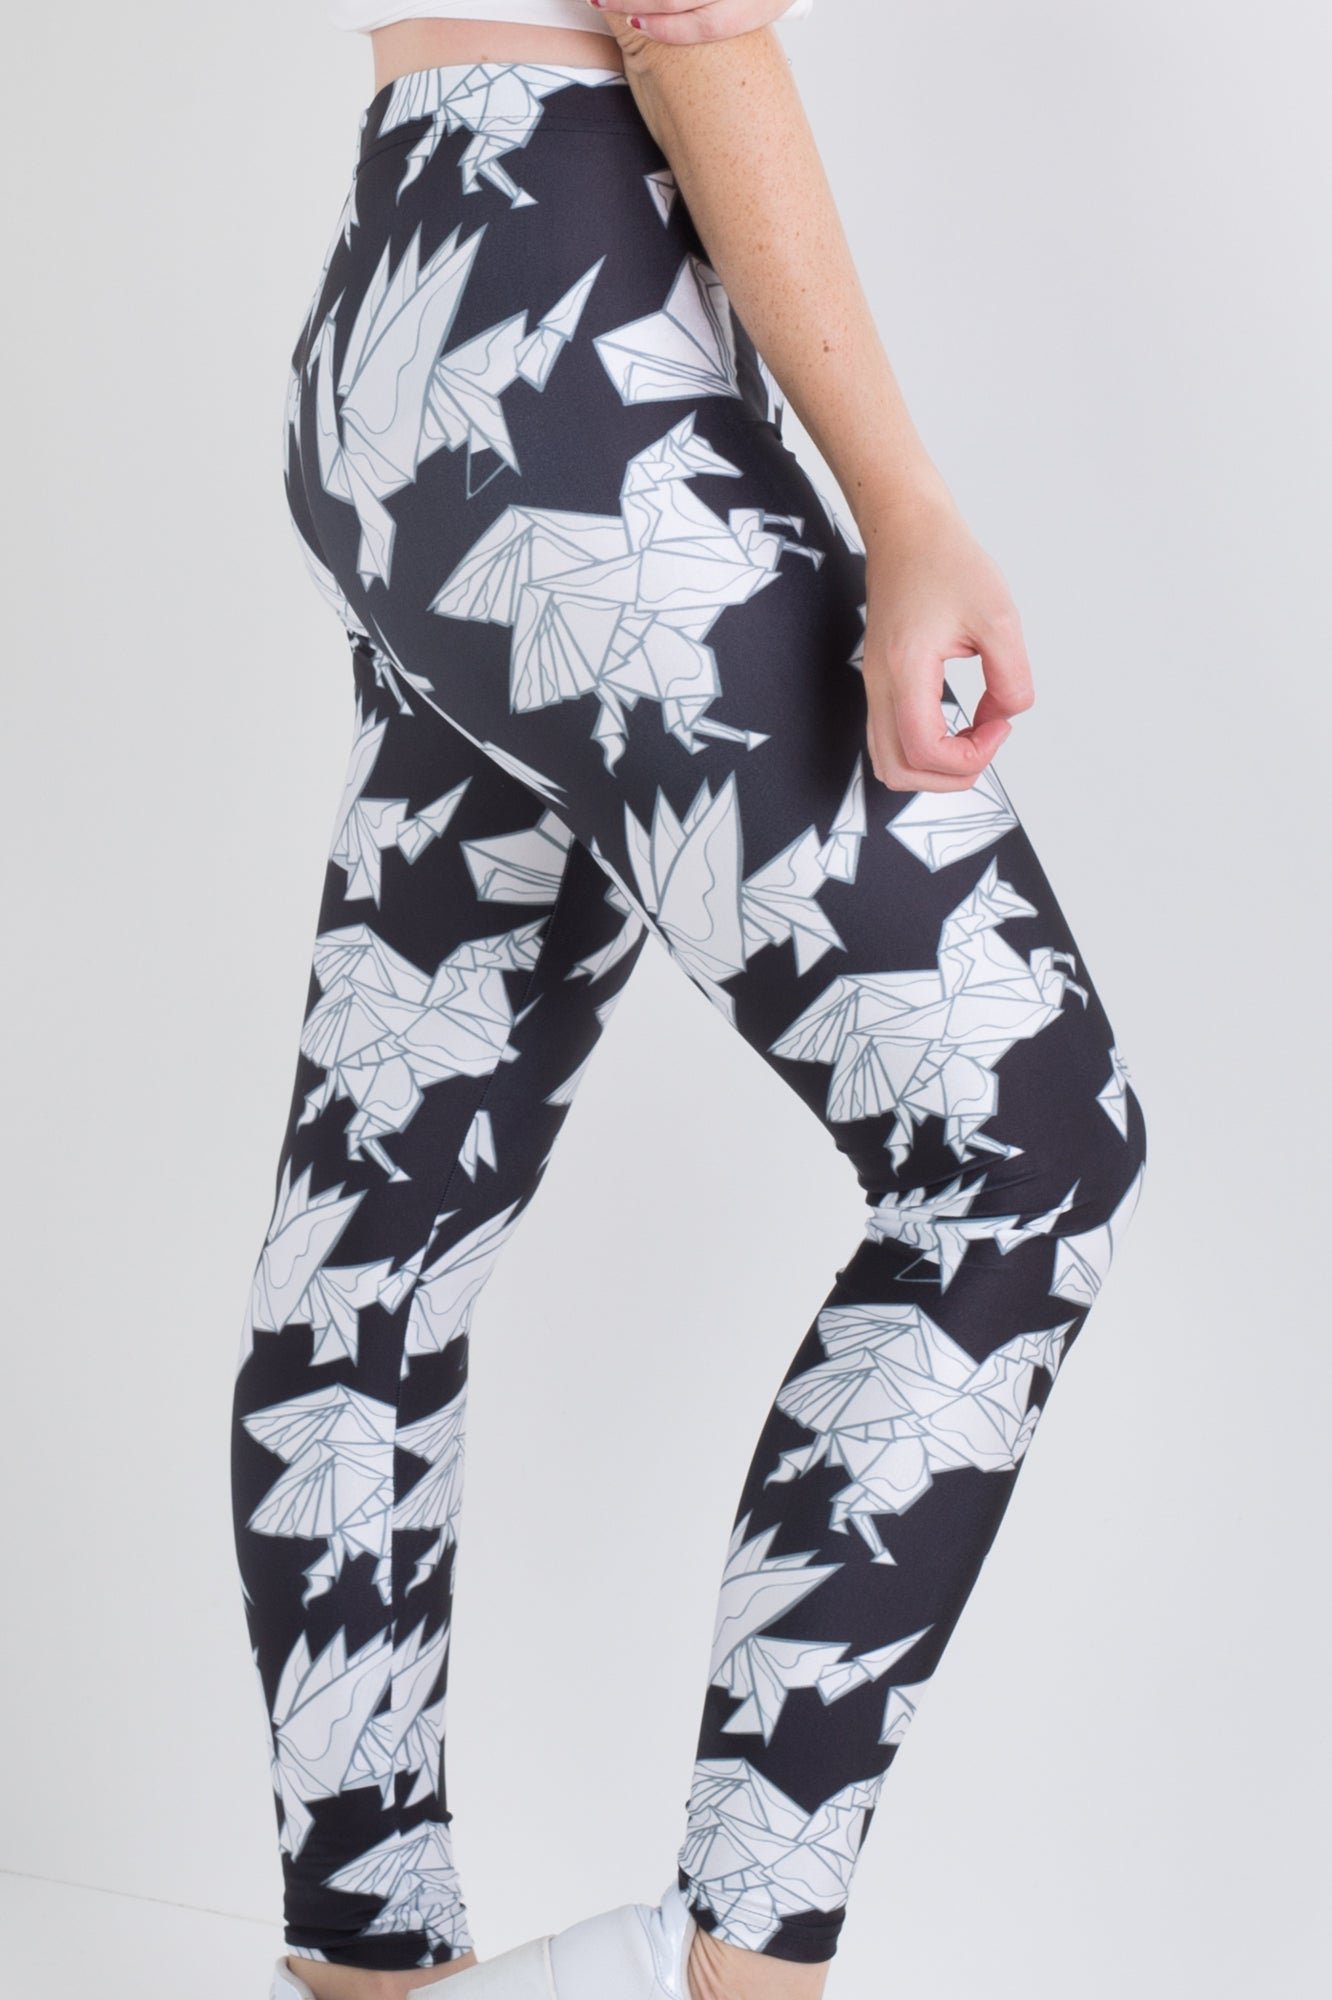 Mythical Origami Leggings